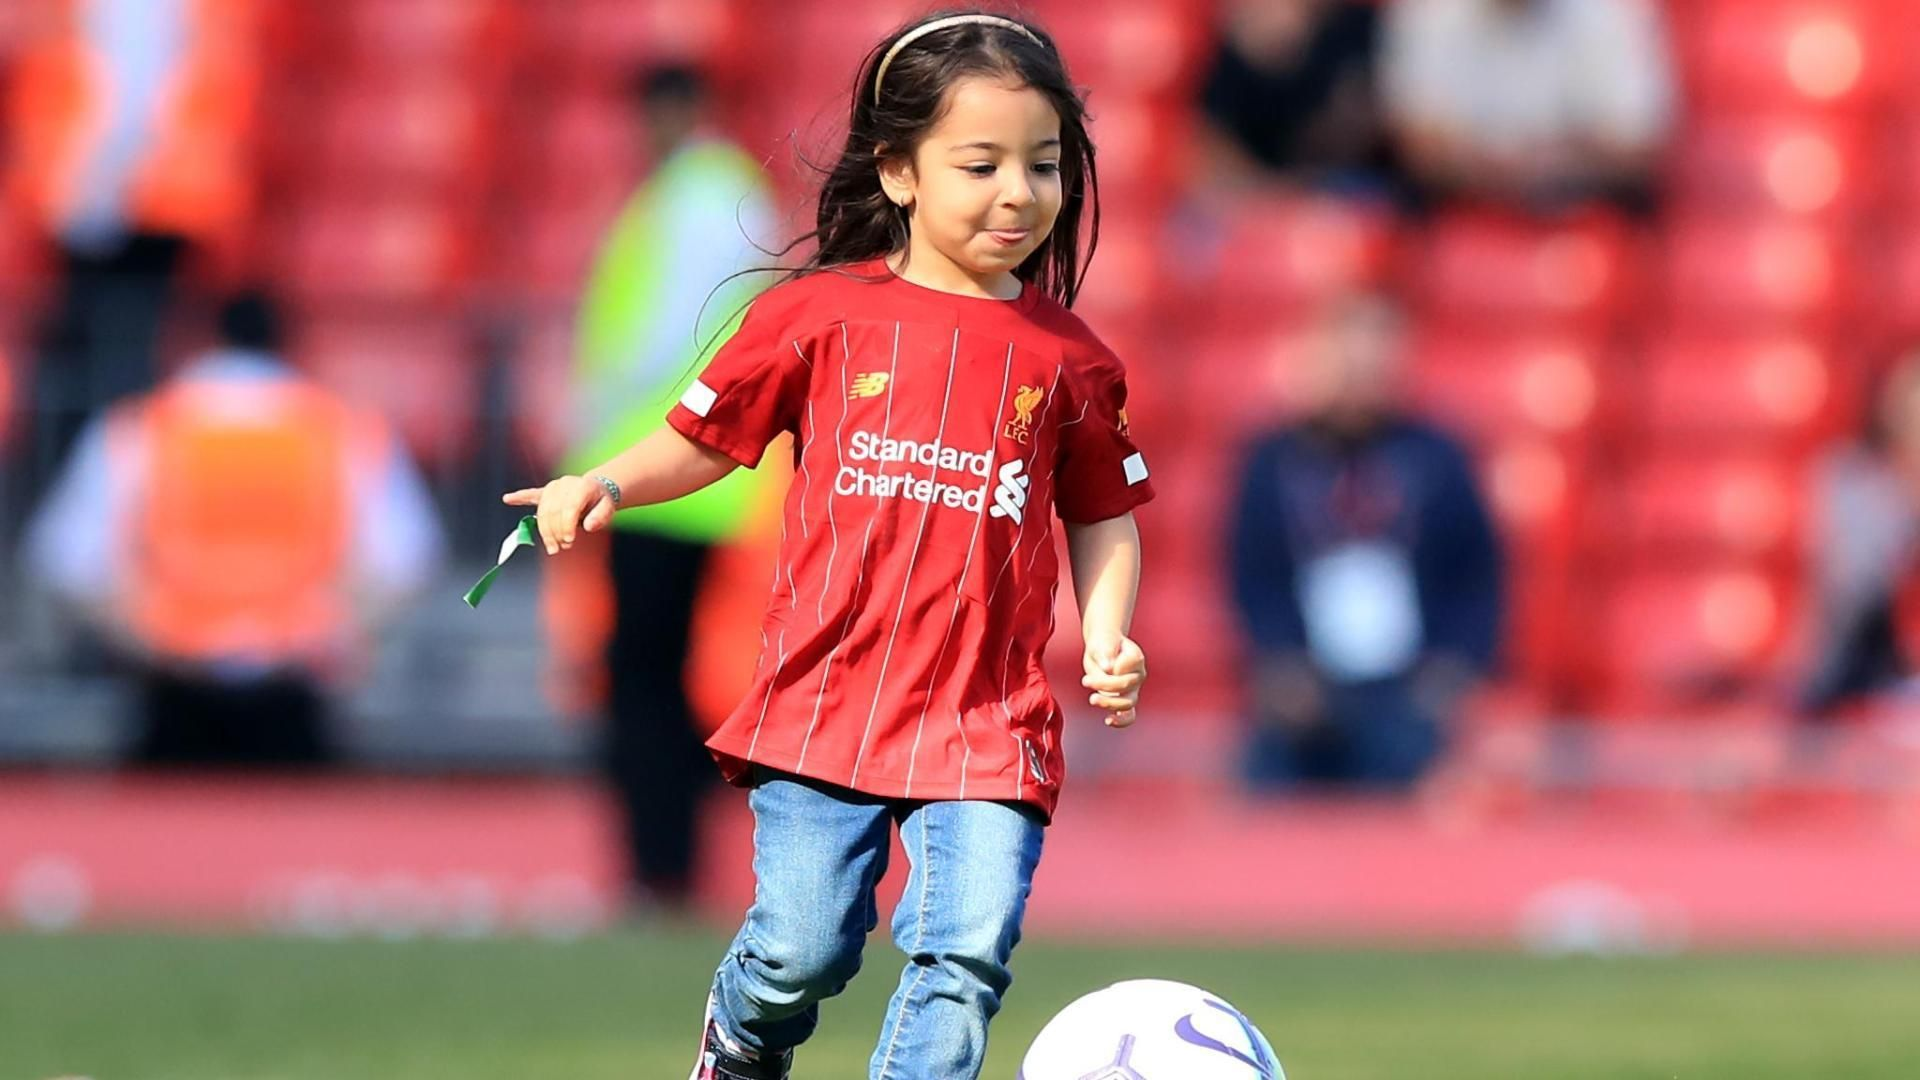 Salah's daughter scores a goal for the Anfield crowd